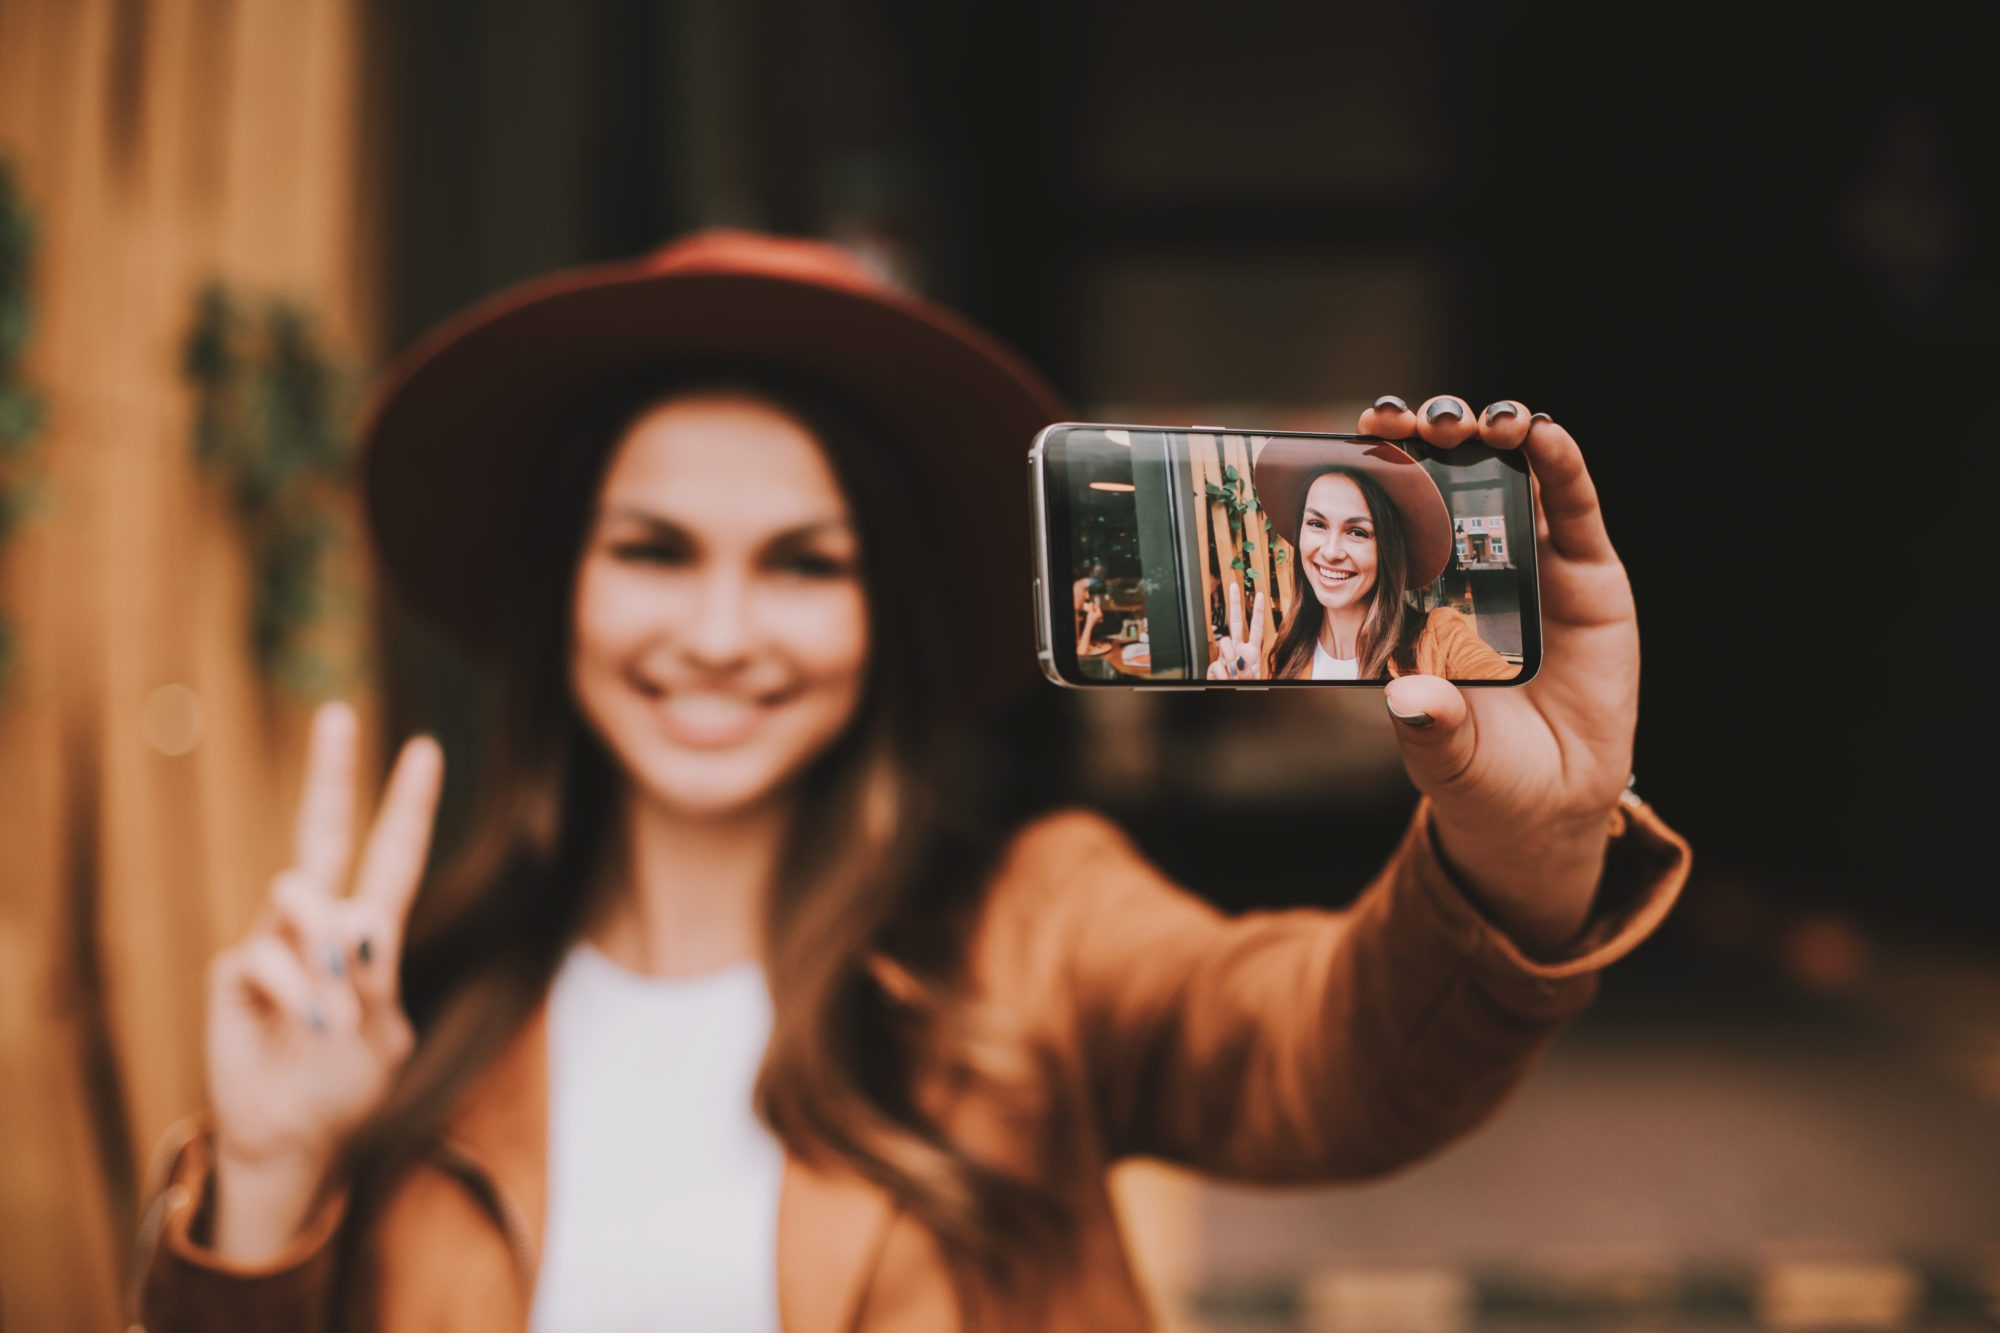 Woman taking selfie with phone holding up peace sign